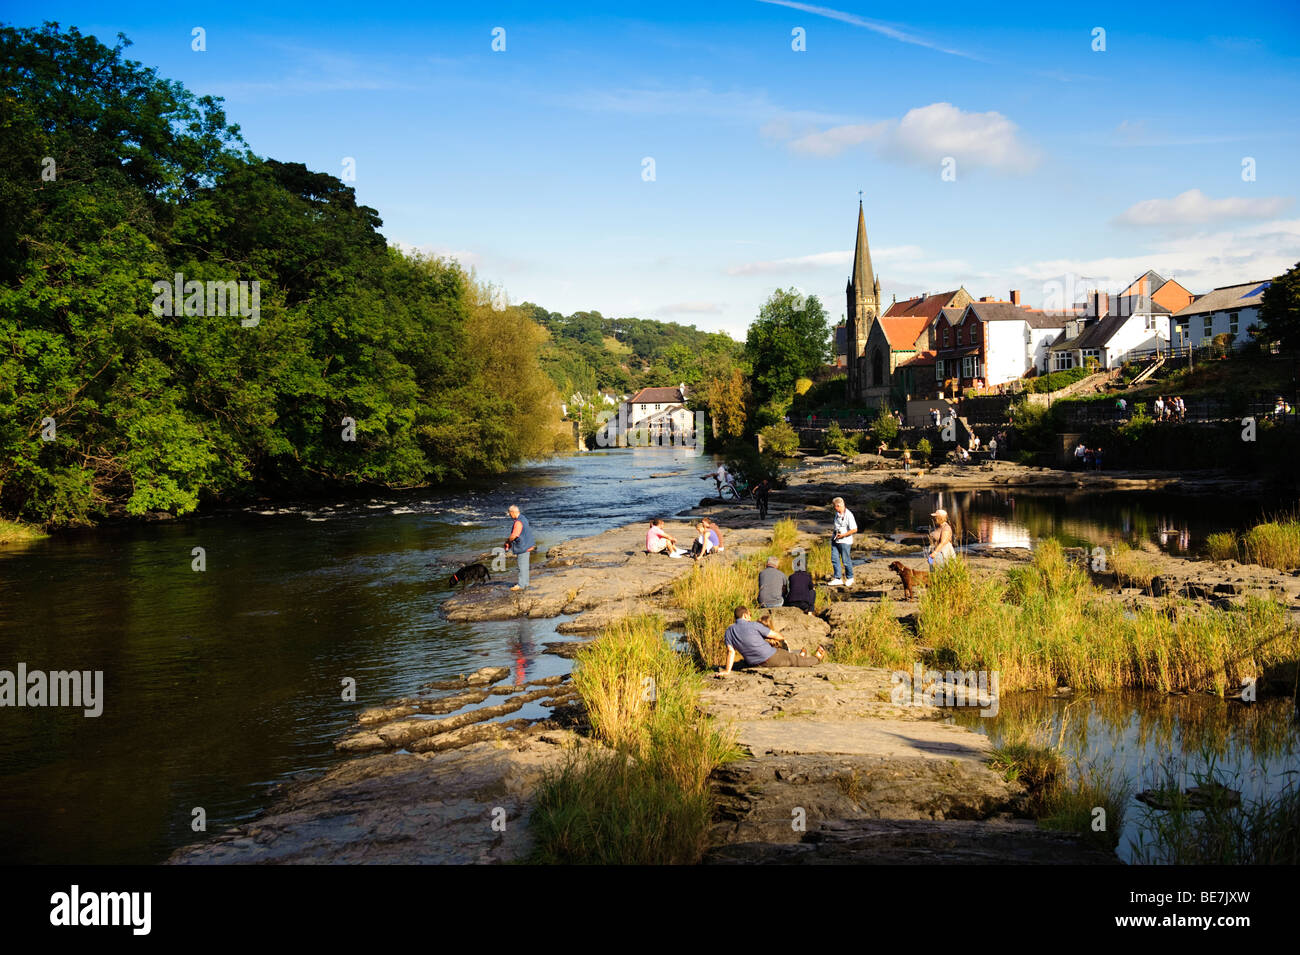 The River Dee flowing through Llangollen town, north wales UK, late summer afternoon Stock Photo